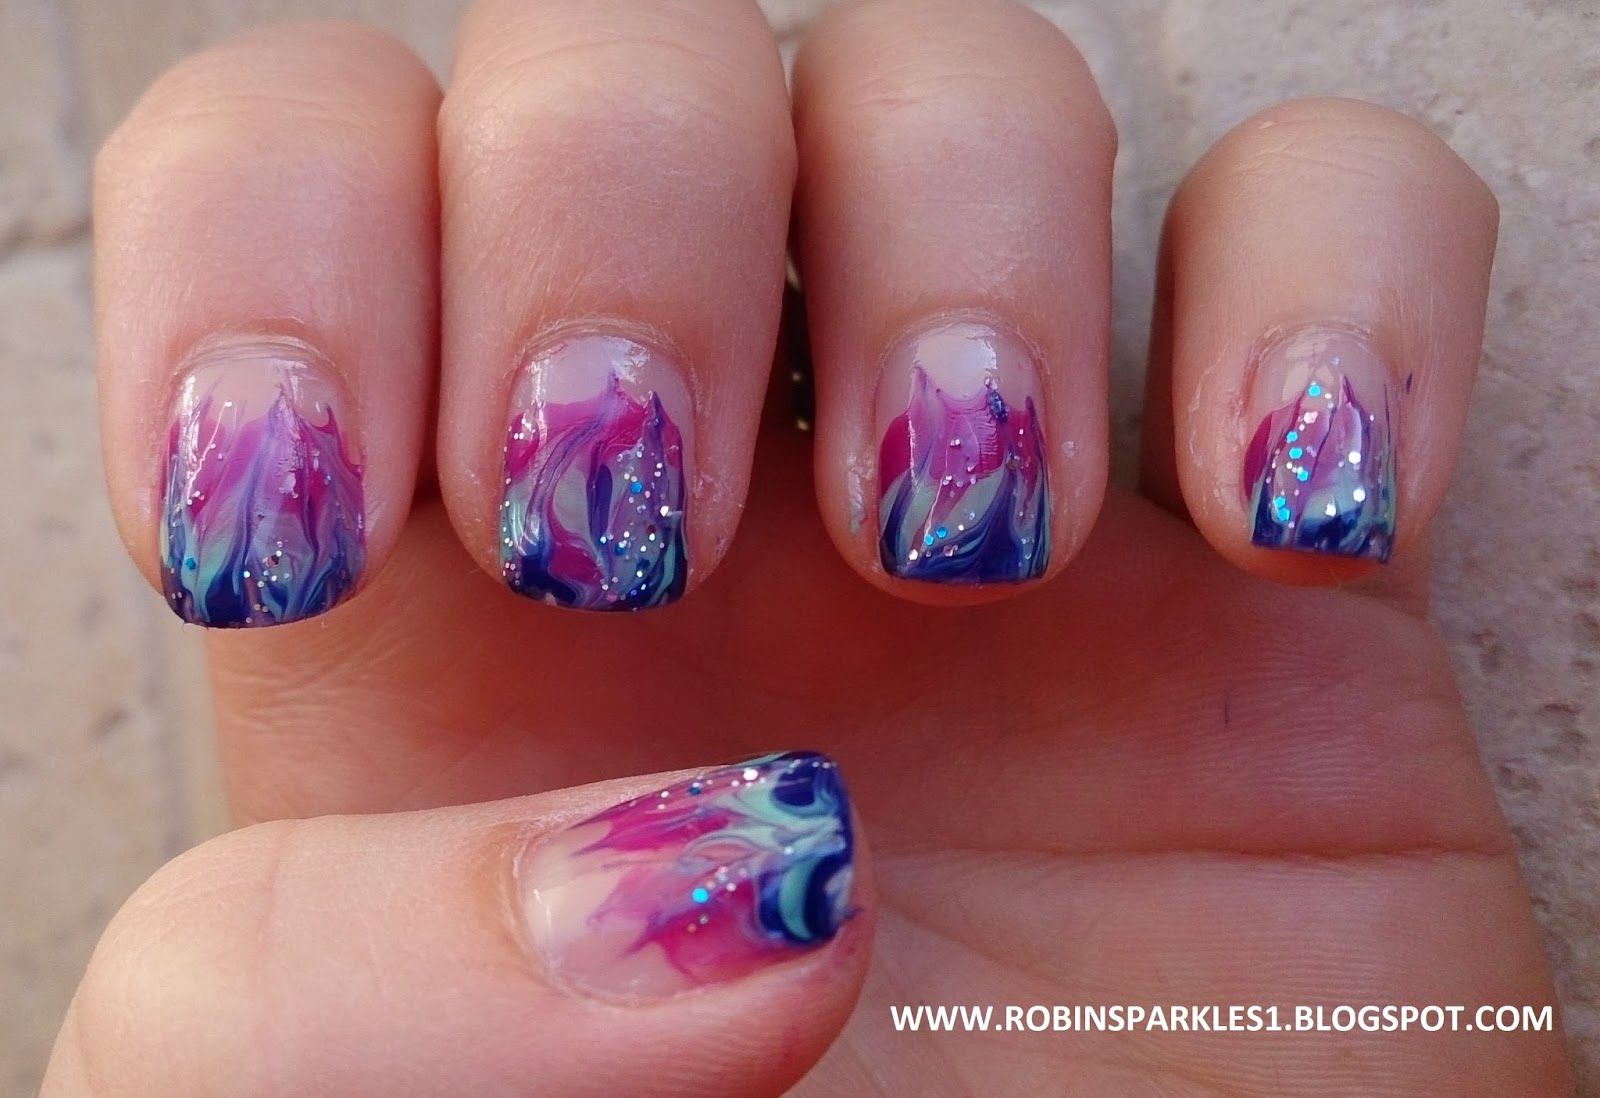 Robin Sparkles Blog: Flame Nails: Robin Moses YouTube inspired